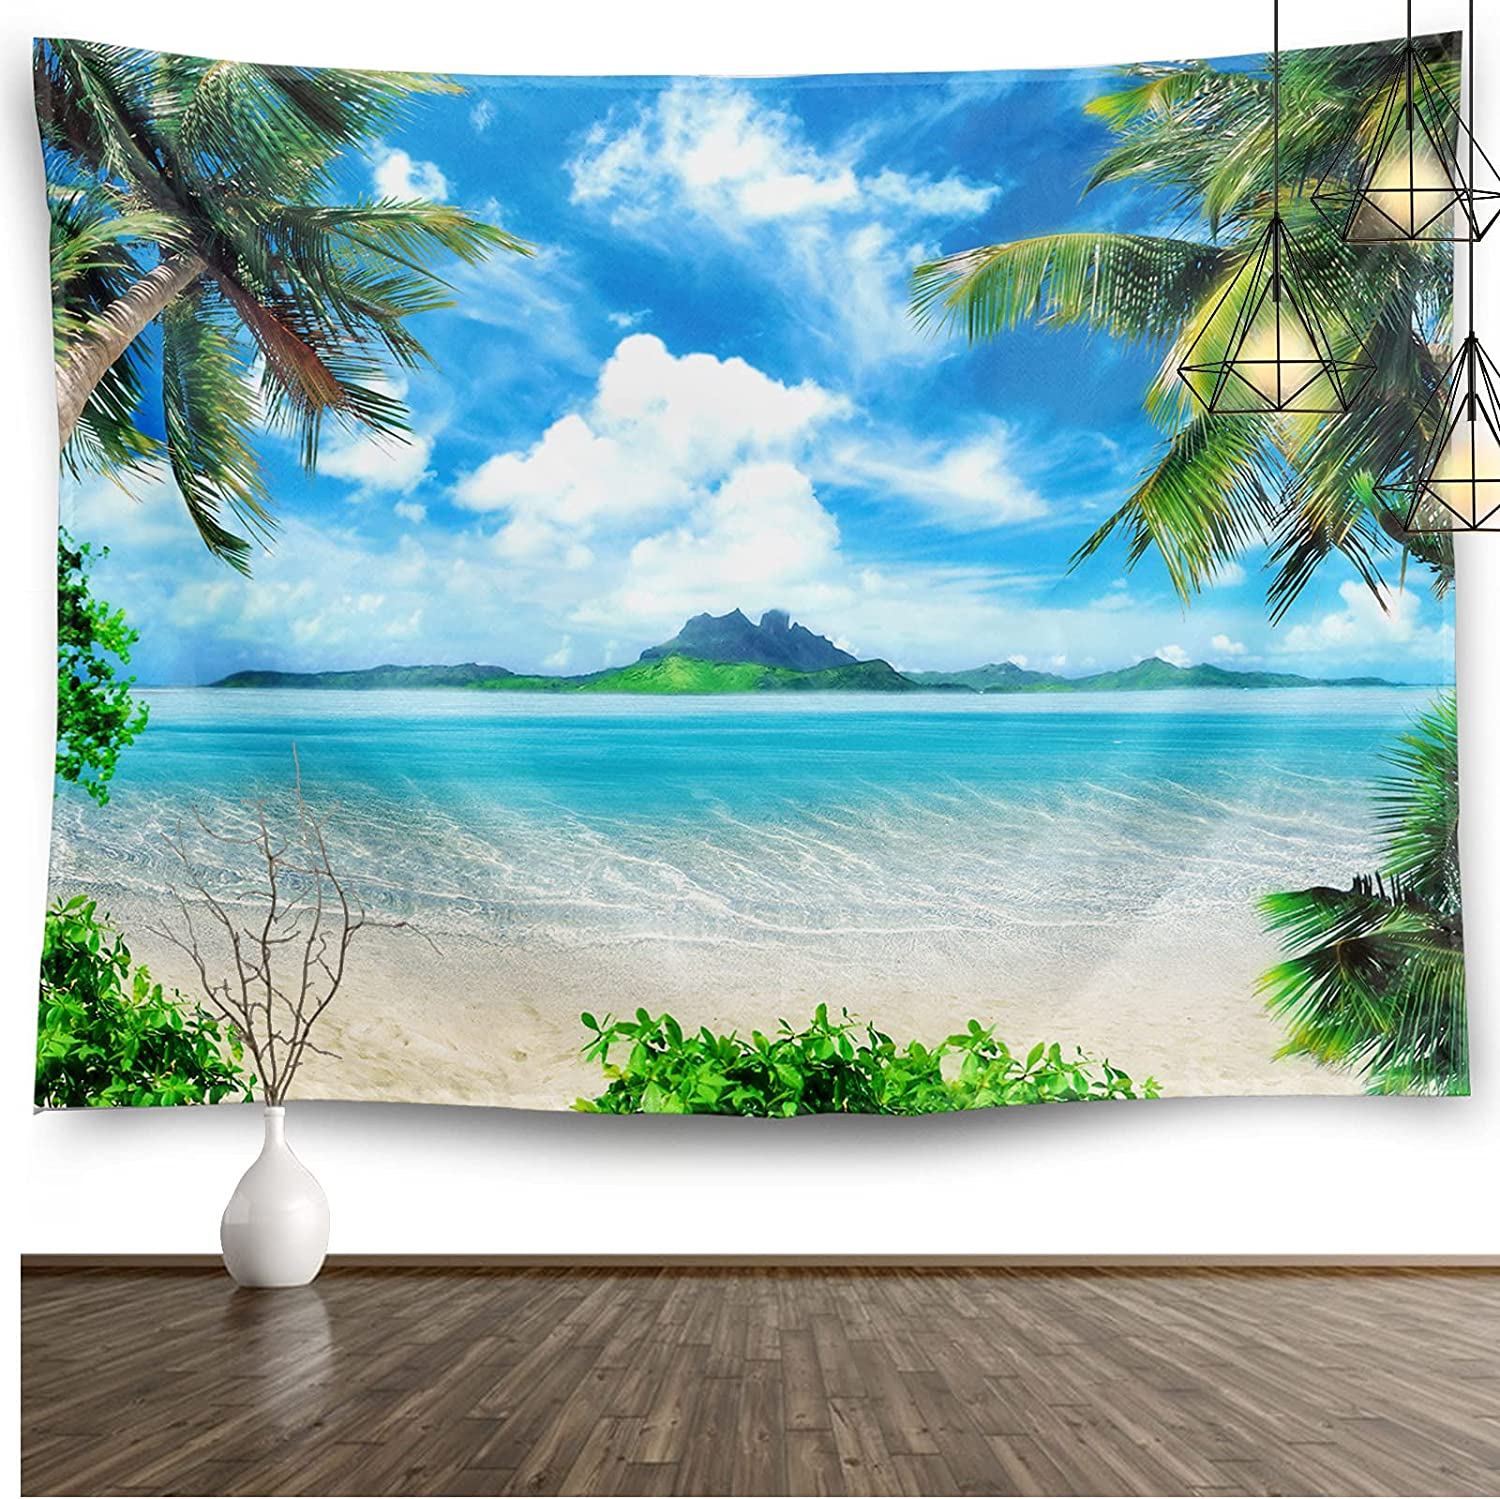 Ocean Beach Tapestry Home Decor Hawaii Tropic Palm Coconut Tree Small Wall Hanging Art Blanket for Living Room Bedroom College Dorm Office Aesthetic Decor(60